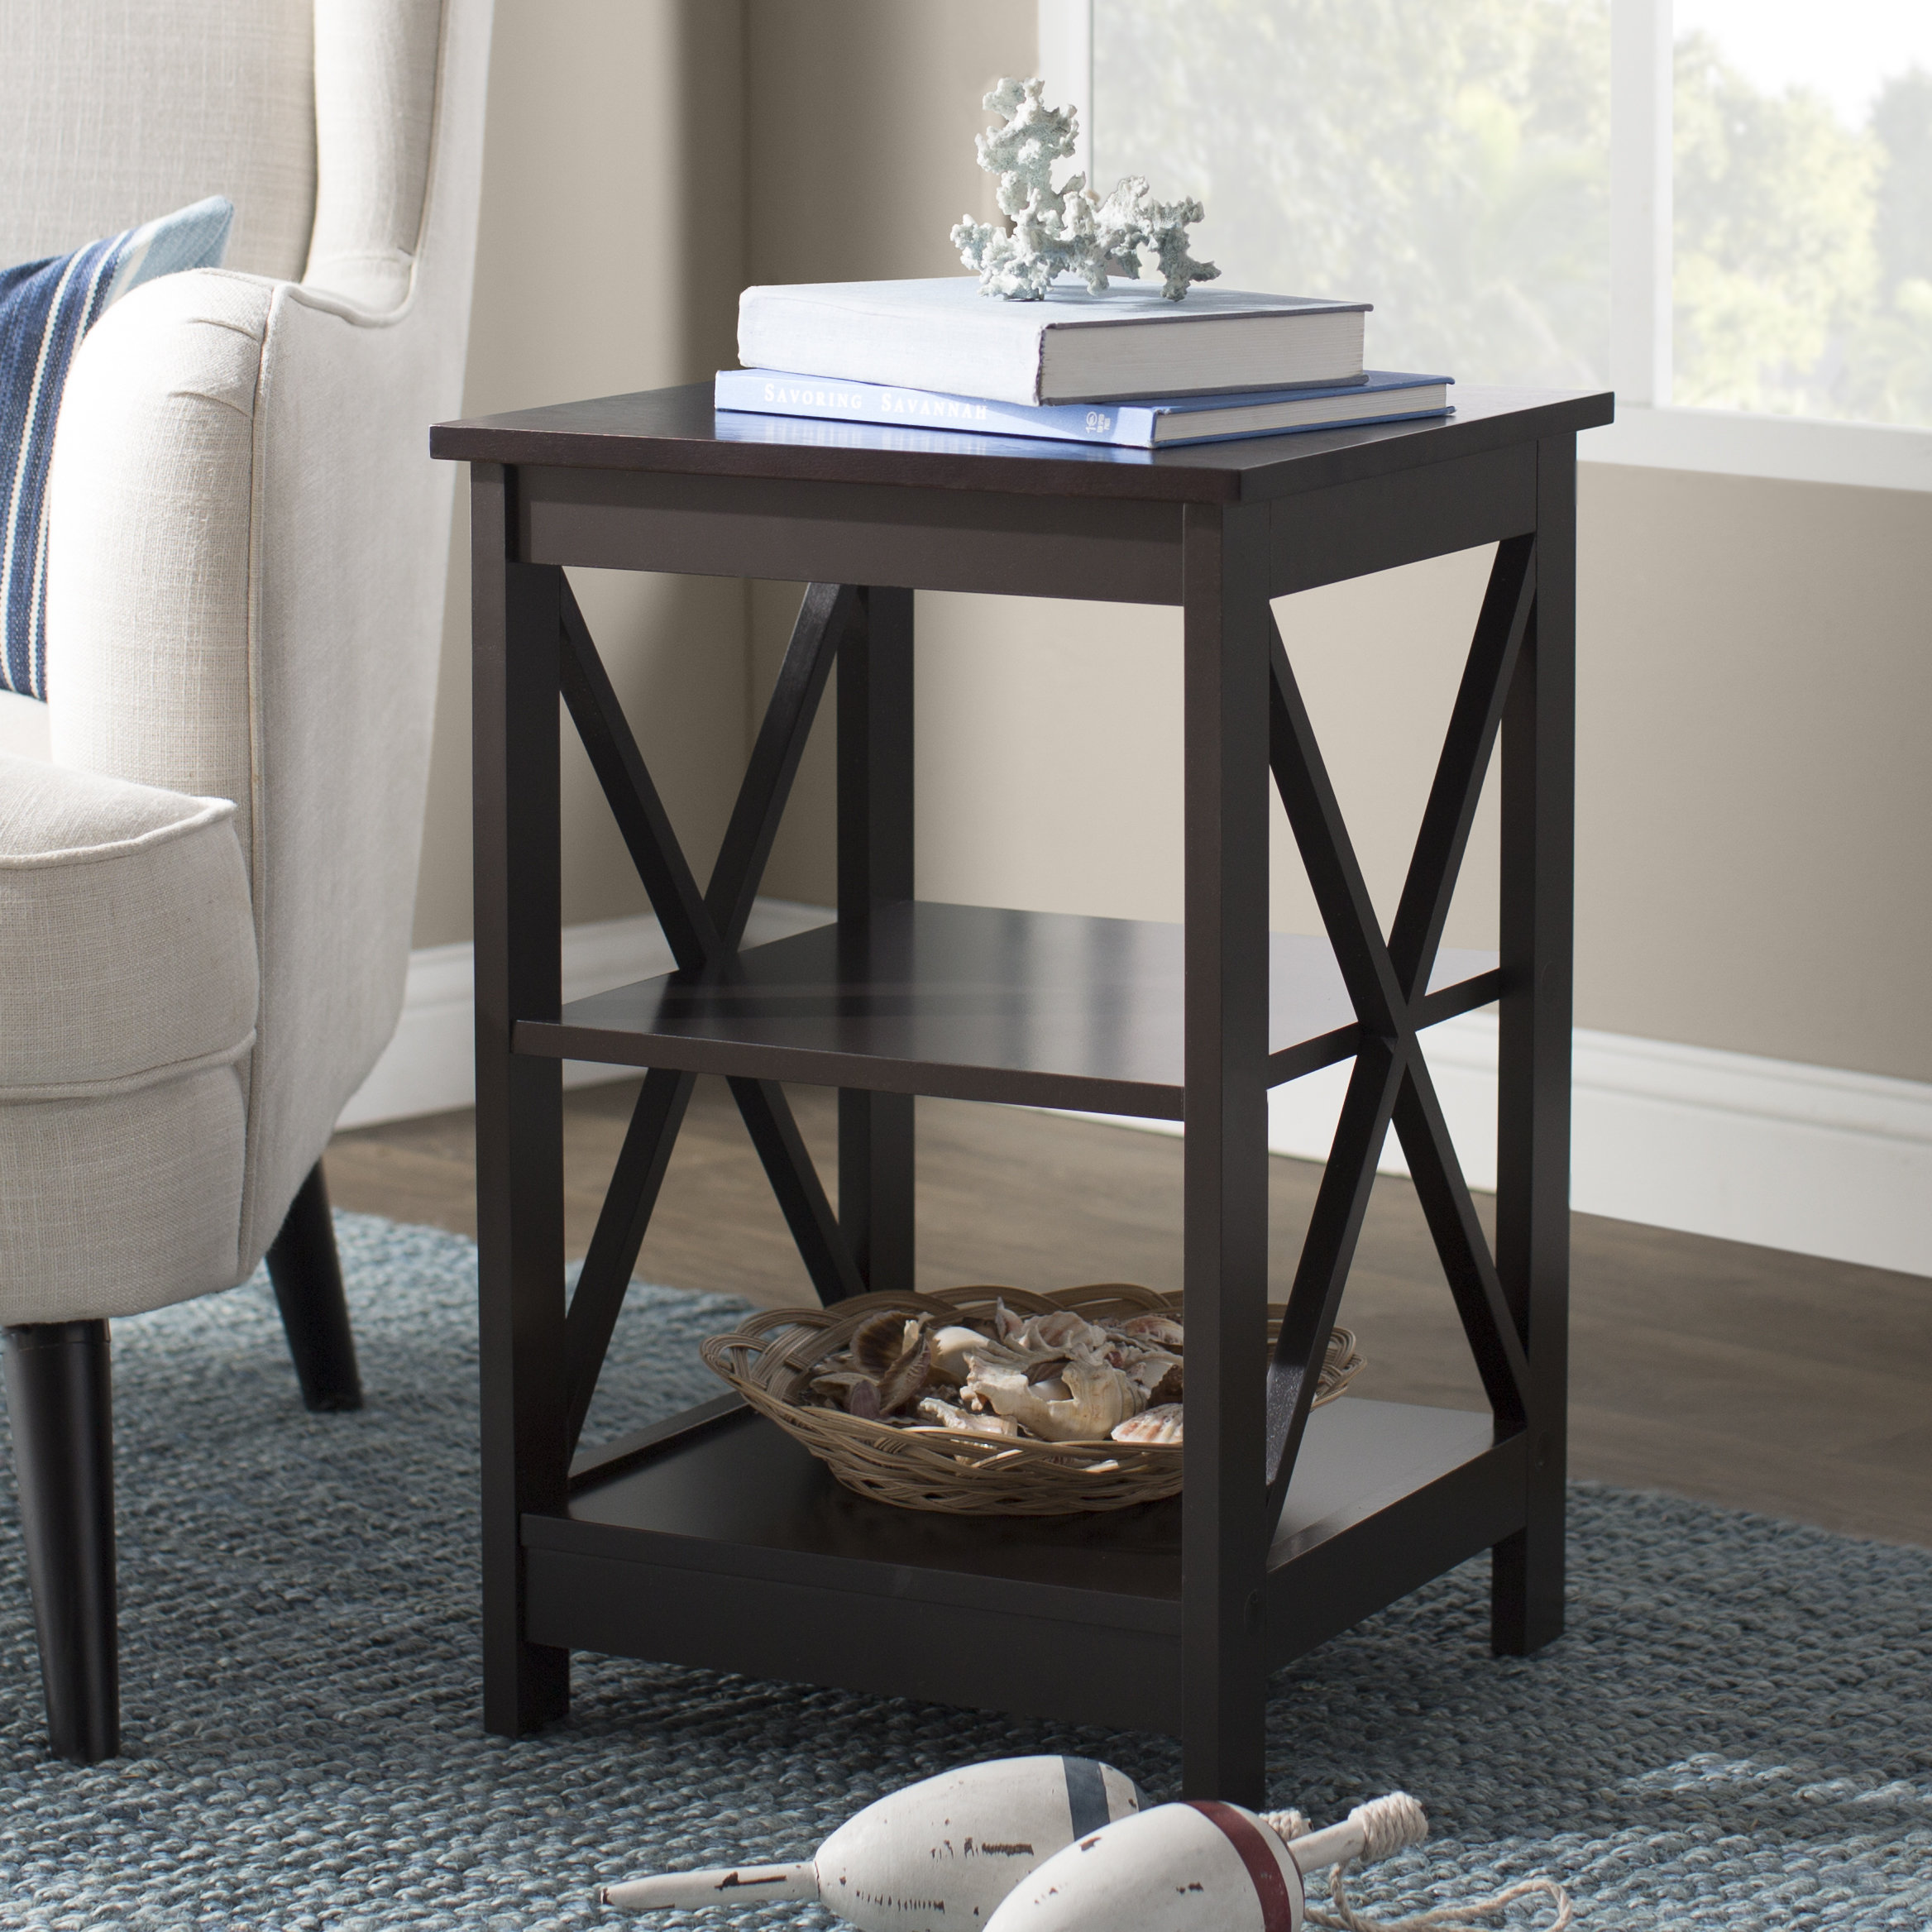 curved accent table stoneford end tables edmonton quickview wood patio side metal occasional bamboo vanora ultra modern lamps farmhouse dining blue porcelain lamp large